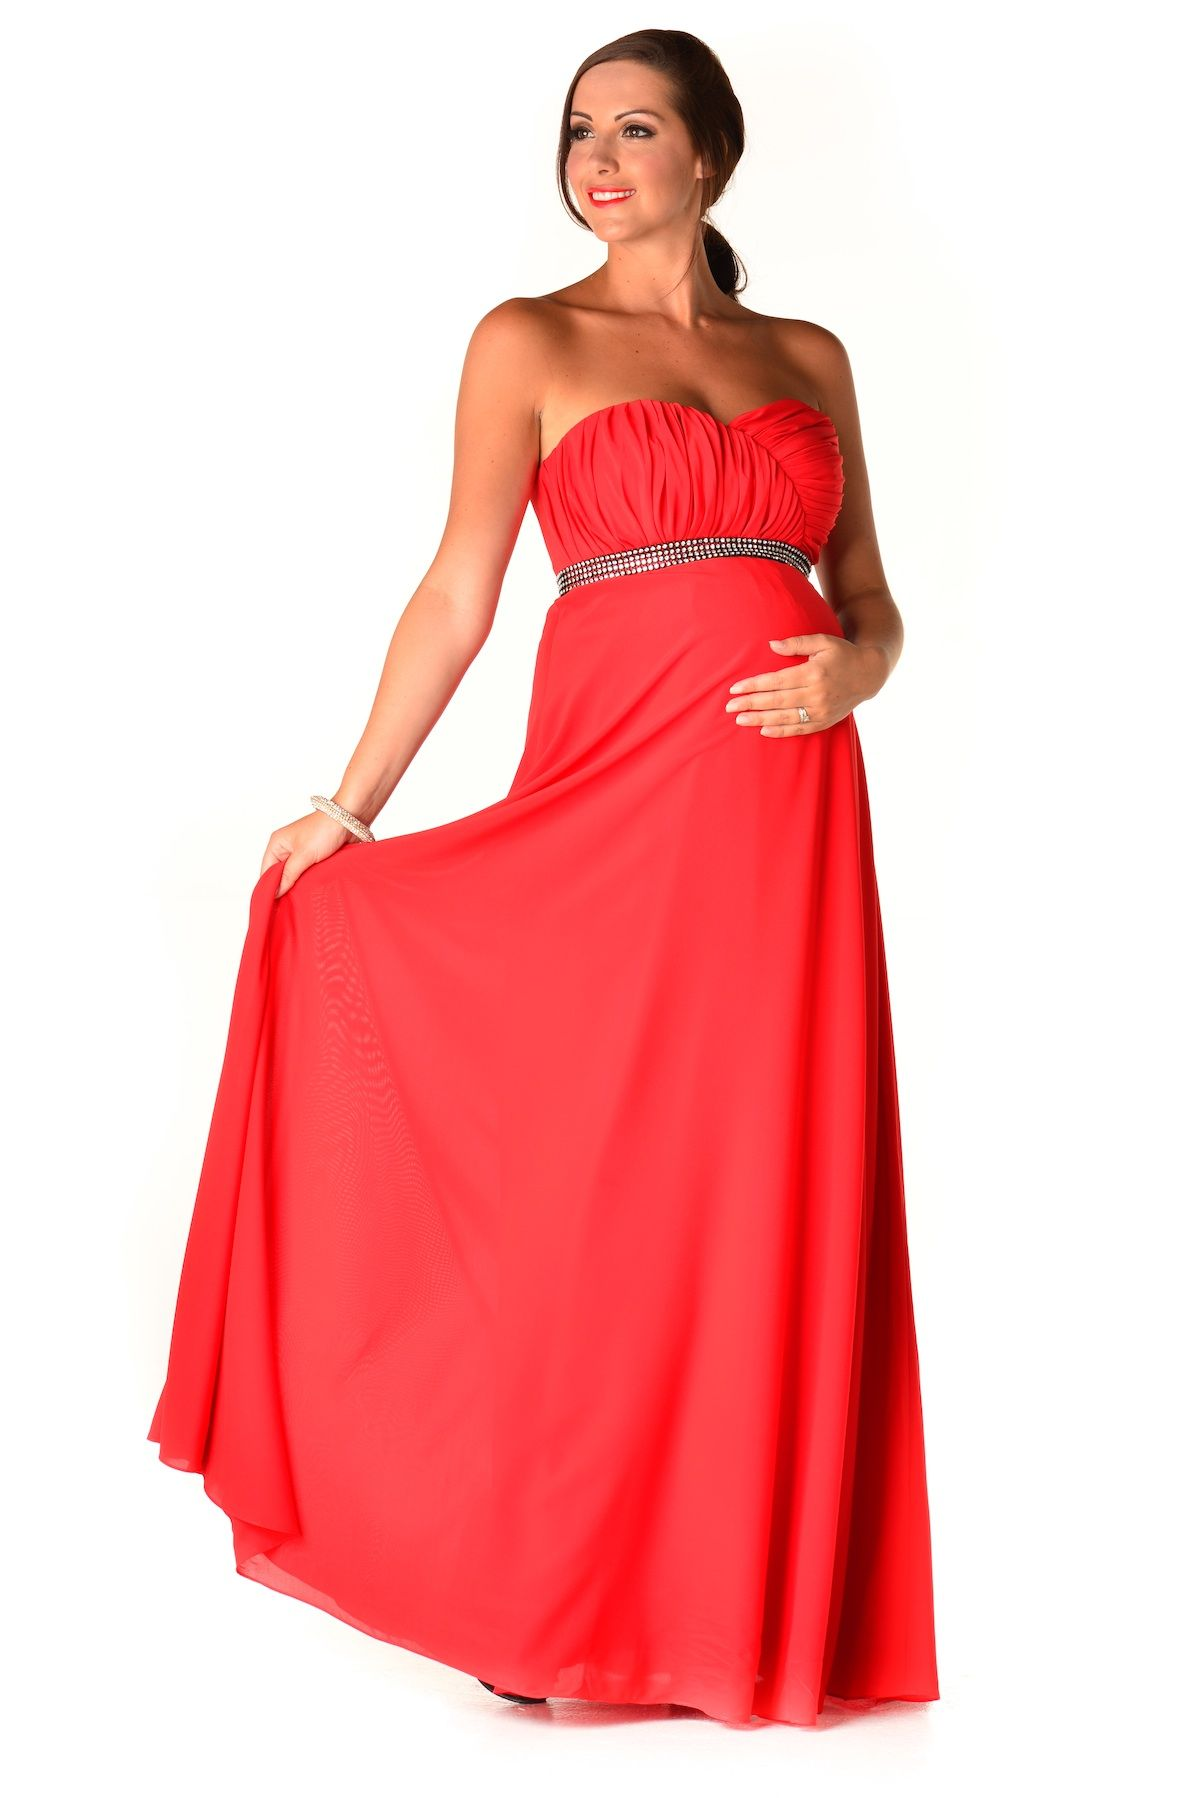 Tallula red maternity evening dress just stunning latest maternity bridesmaid dresses as the great dress ombrellifo Image collections